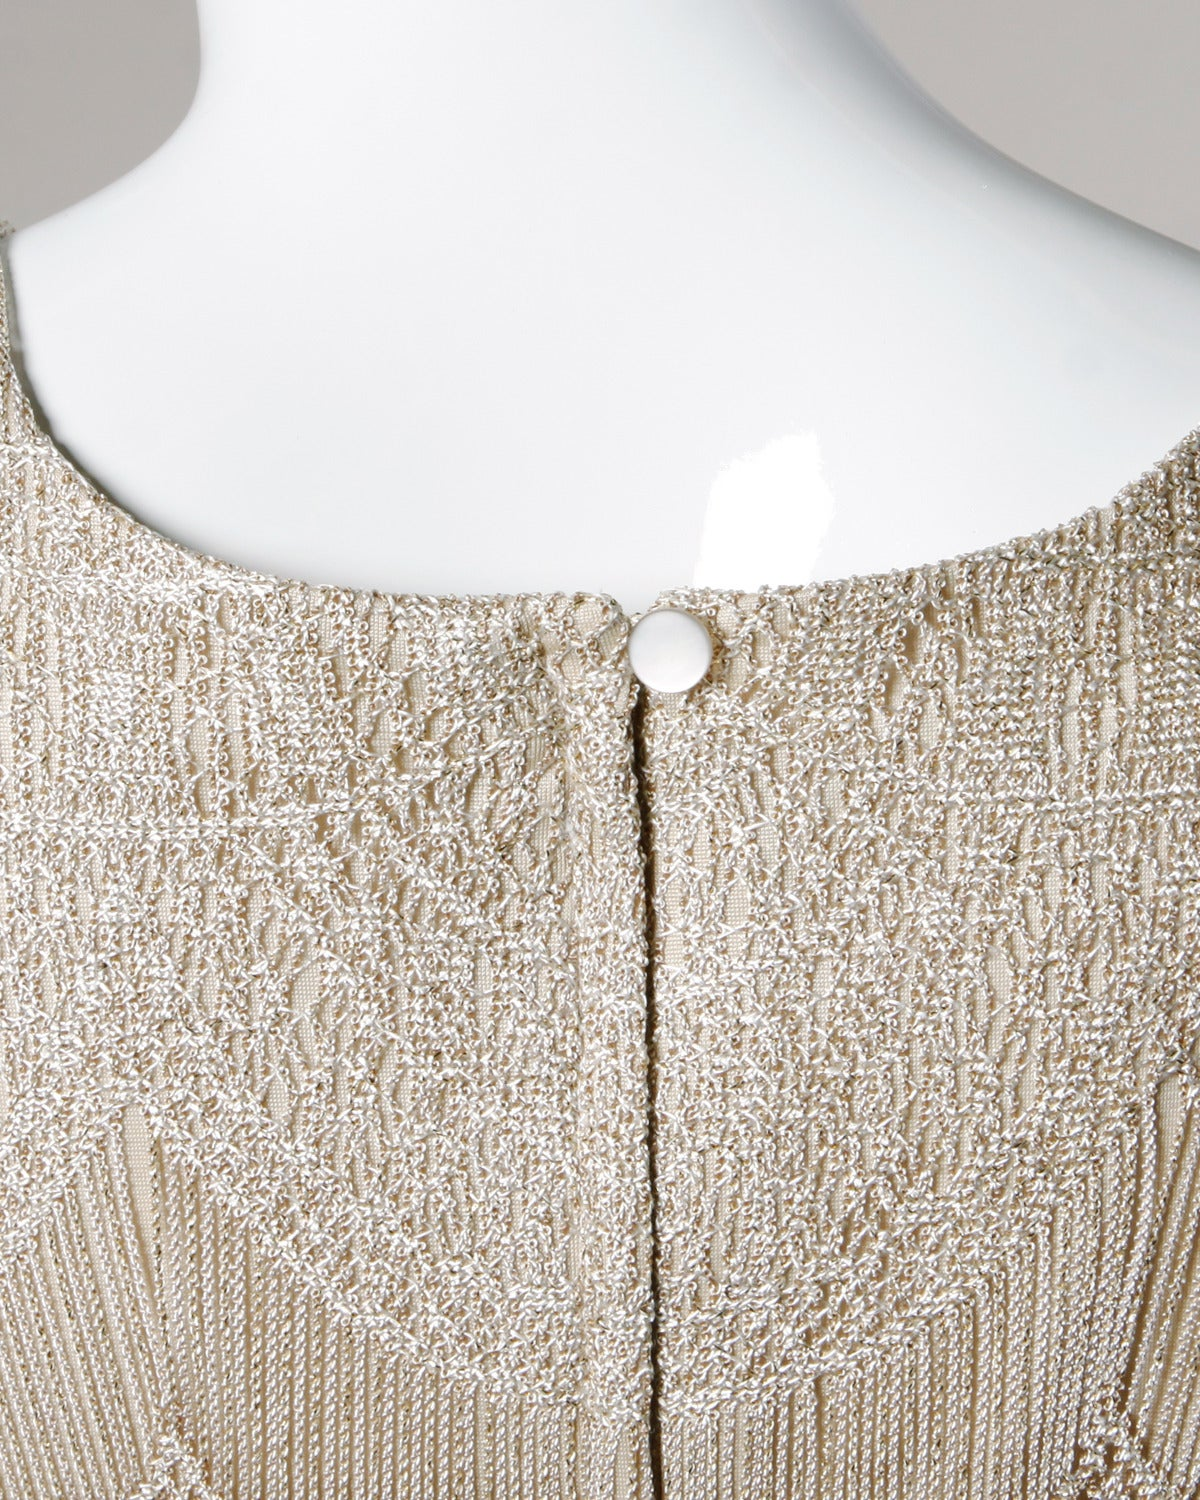 Lillie Rubin Vintage 1990s Metallic Scalloped Lace Flapper Dress 7